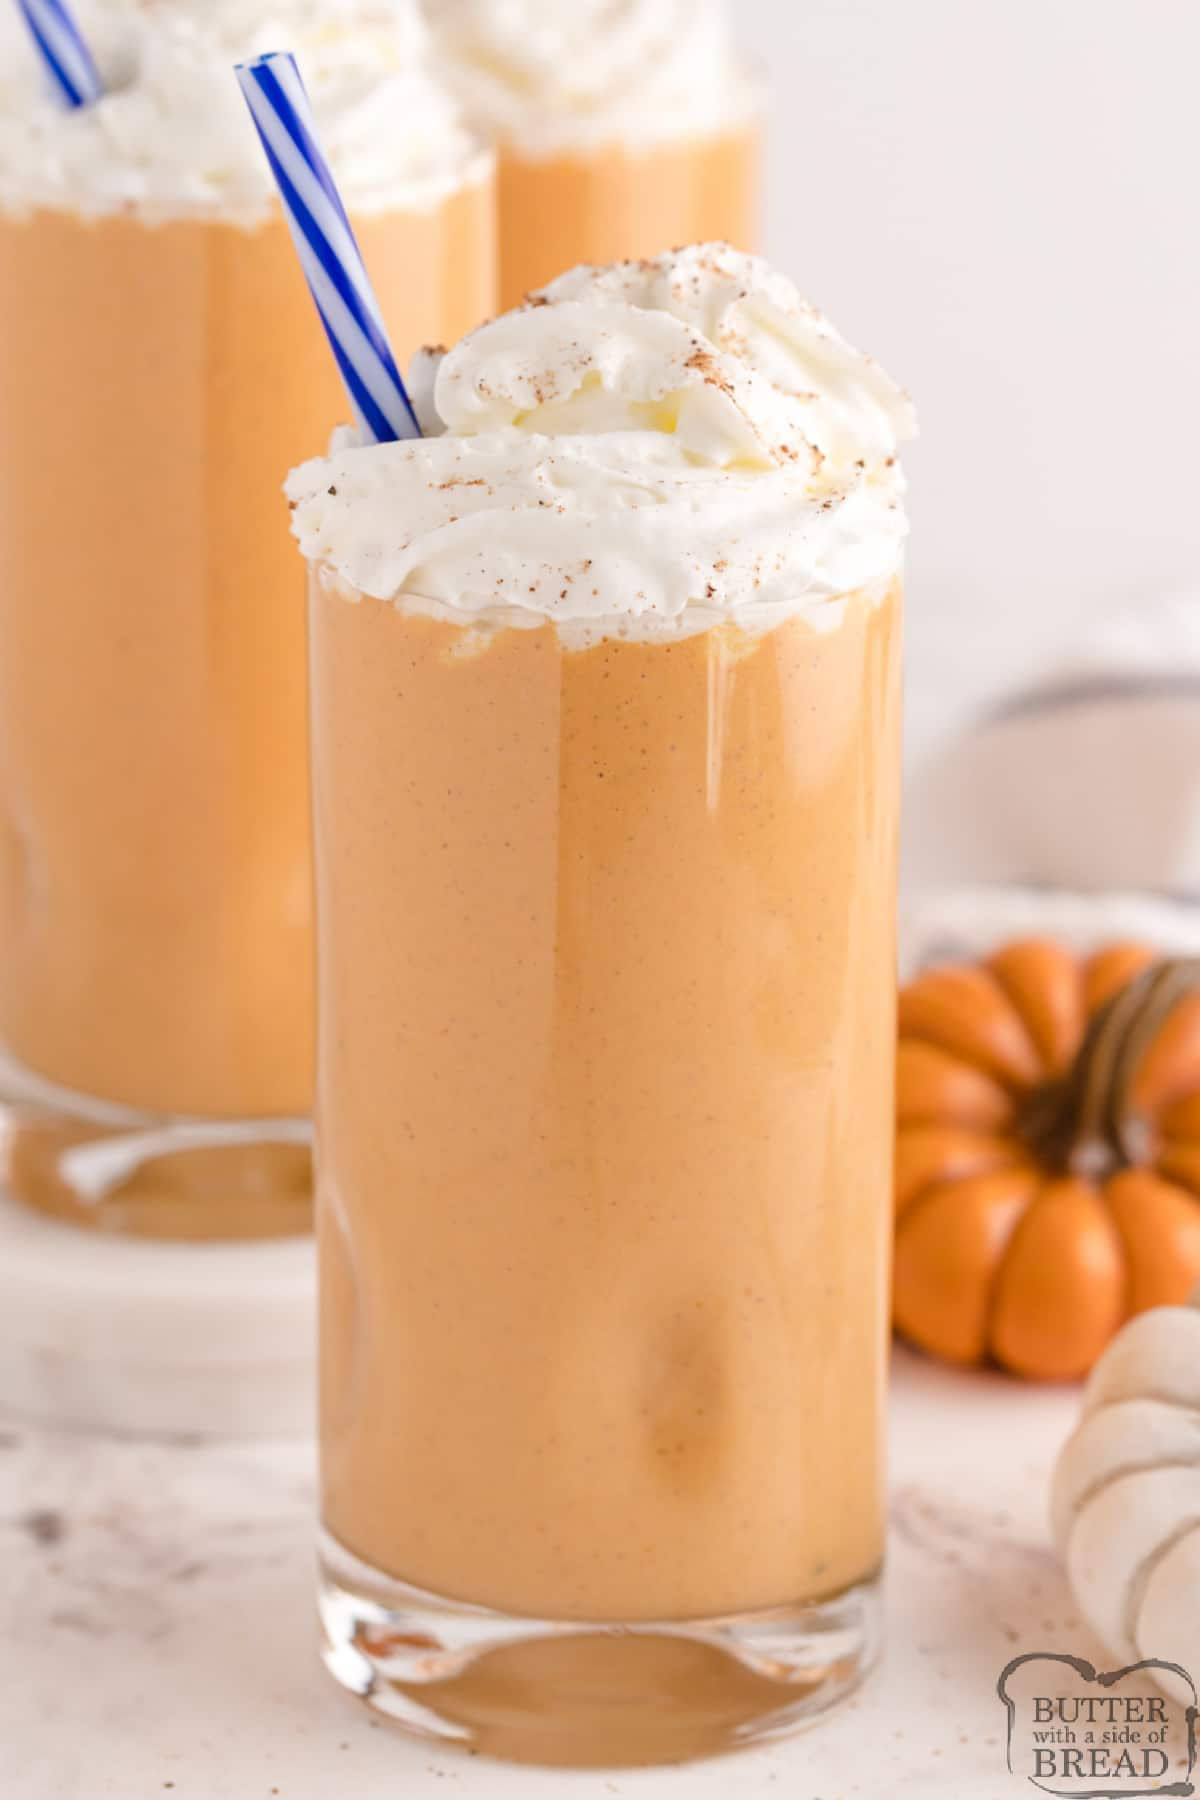 Pumpkin Milkshakes made with real pumpkin and vanilla ice cream! Perfect fall treat that is ready in less than 5 minutes!